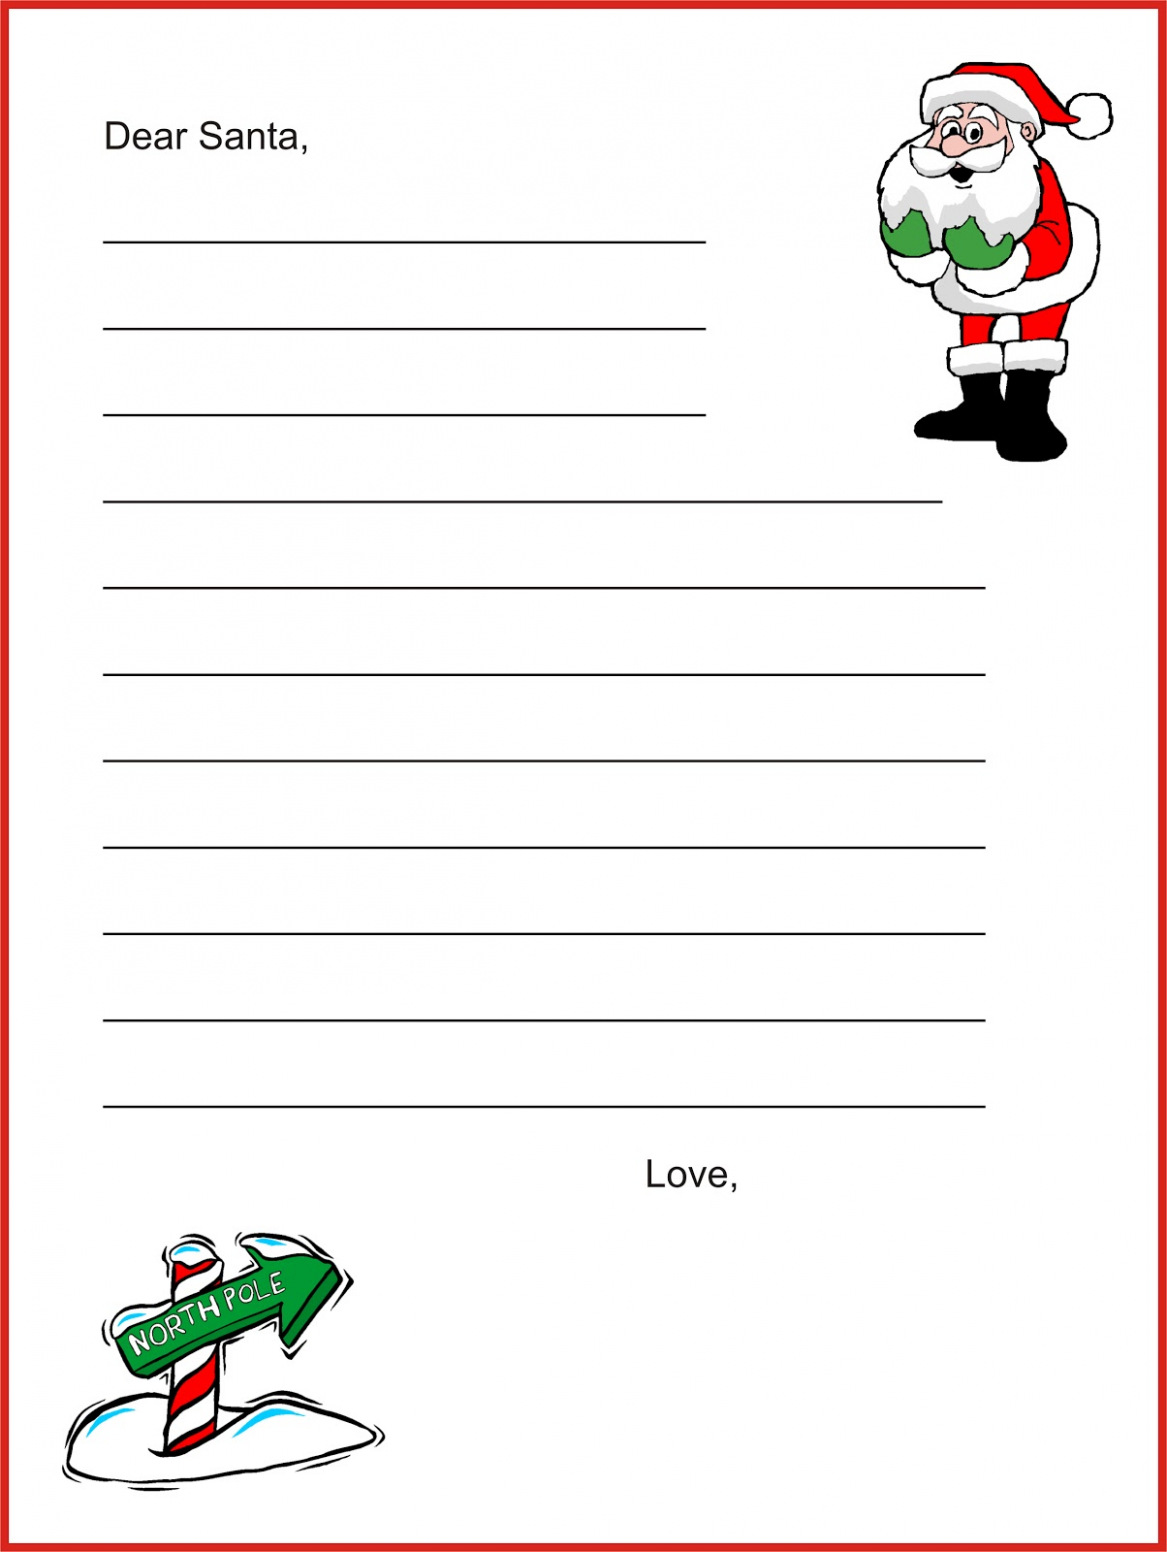 Dear Santa Coloring Pages Print With Free Download 13 Letter Template Create Your Own